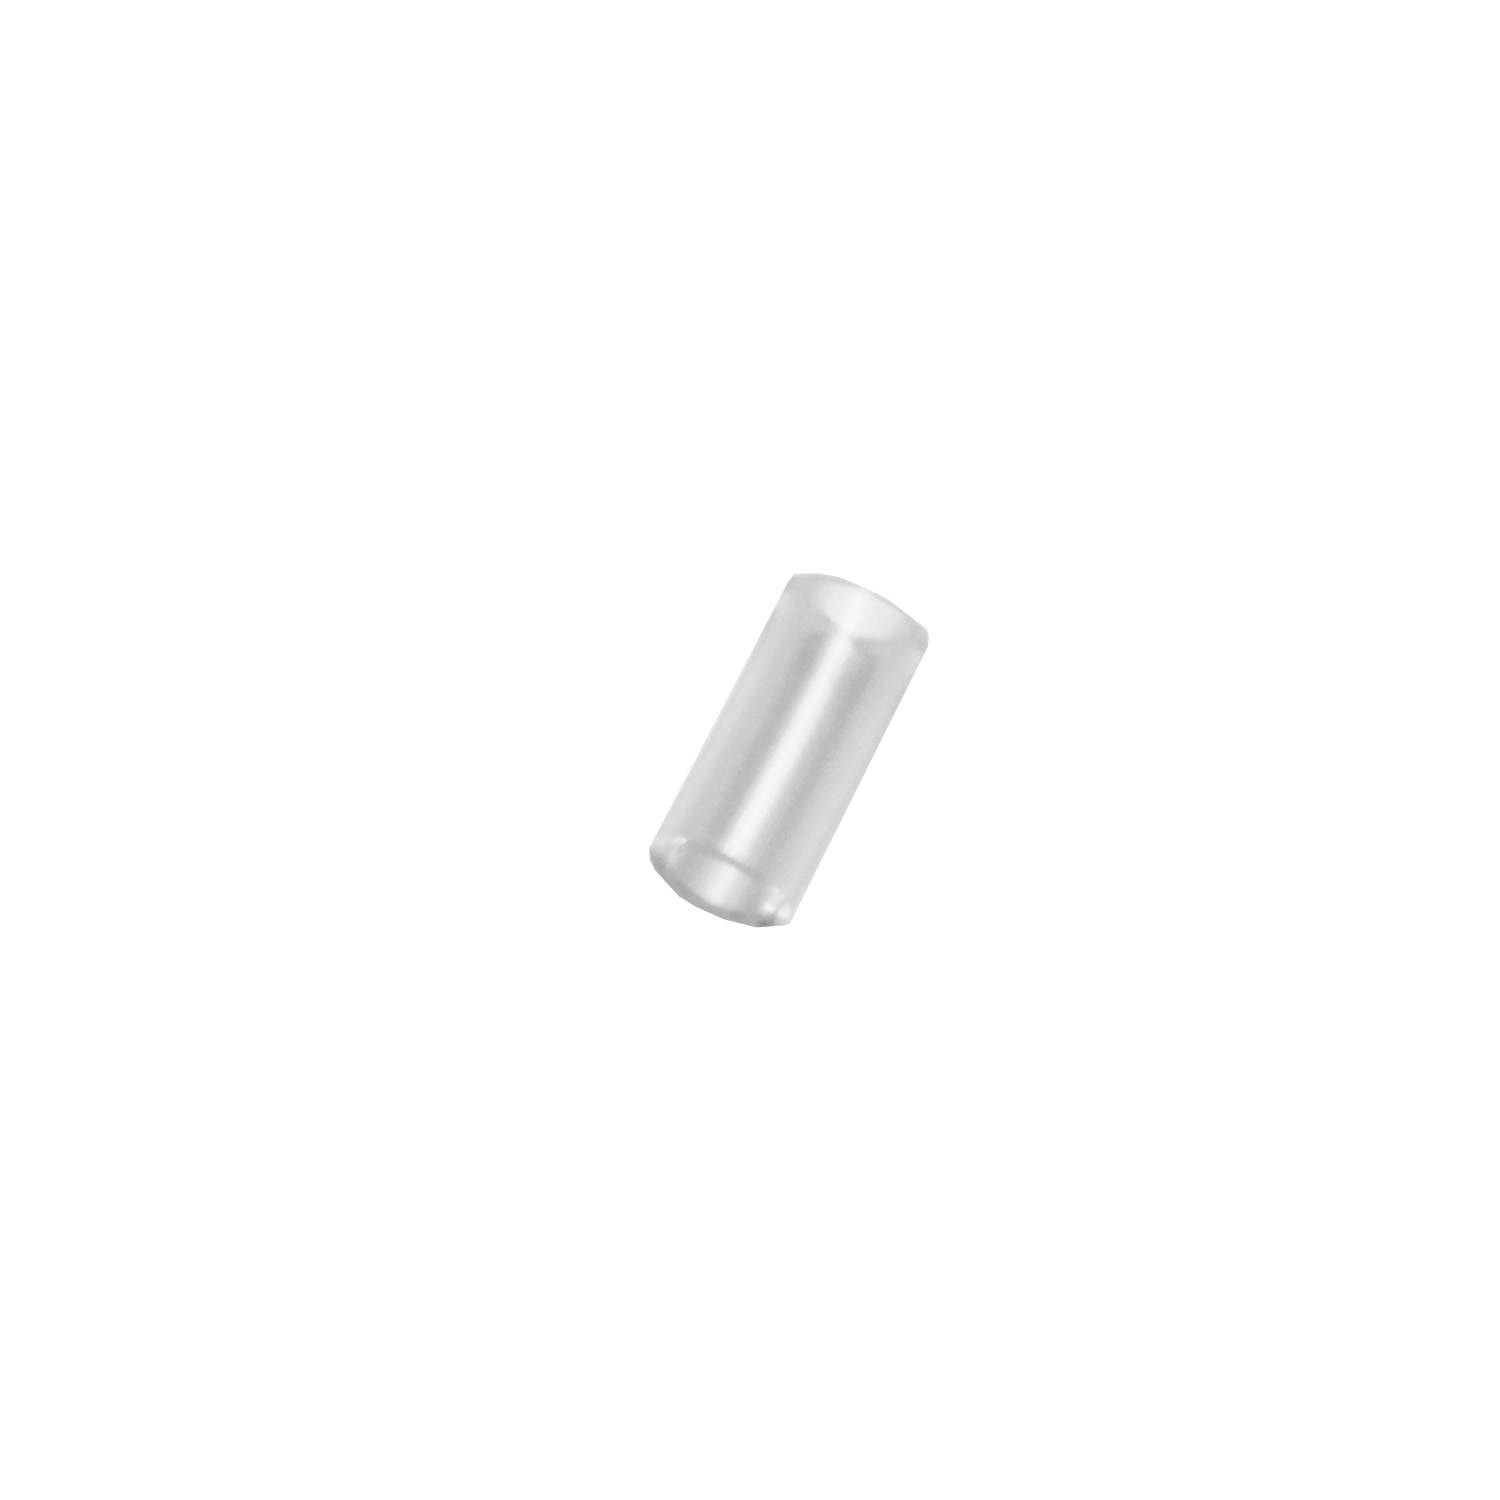 Poly Tube Dowel Pin Cover for Fossil Vise - pack of 4 - FR